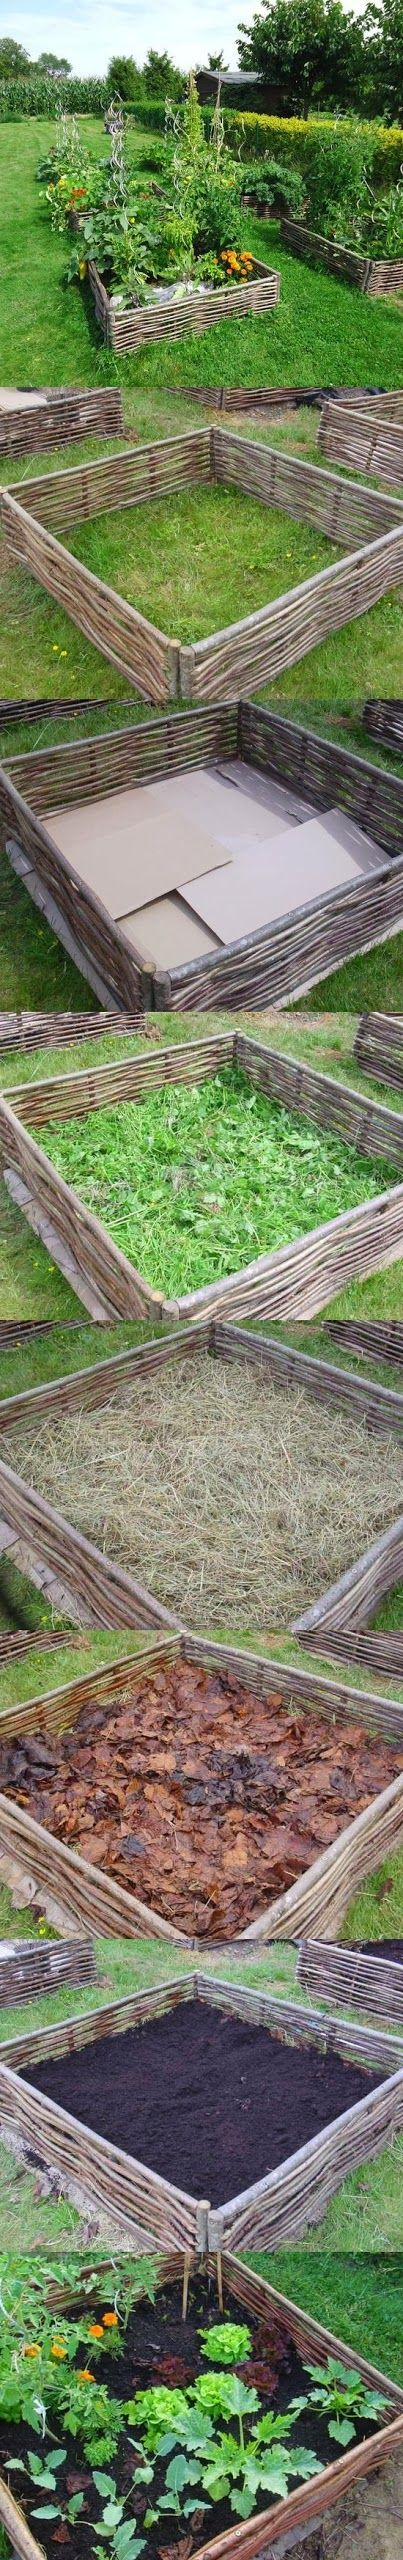 """""""In college, I spent a summer camped out in a barn on an ecovillage learning permaculture methods like raised garden beds, water catchment systems and farming without pesticides,"""" said Pinterest creative brain Tiffani Jones Brown. """"Some of these methods are super easy to do!"""""""